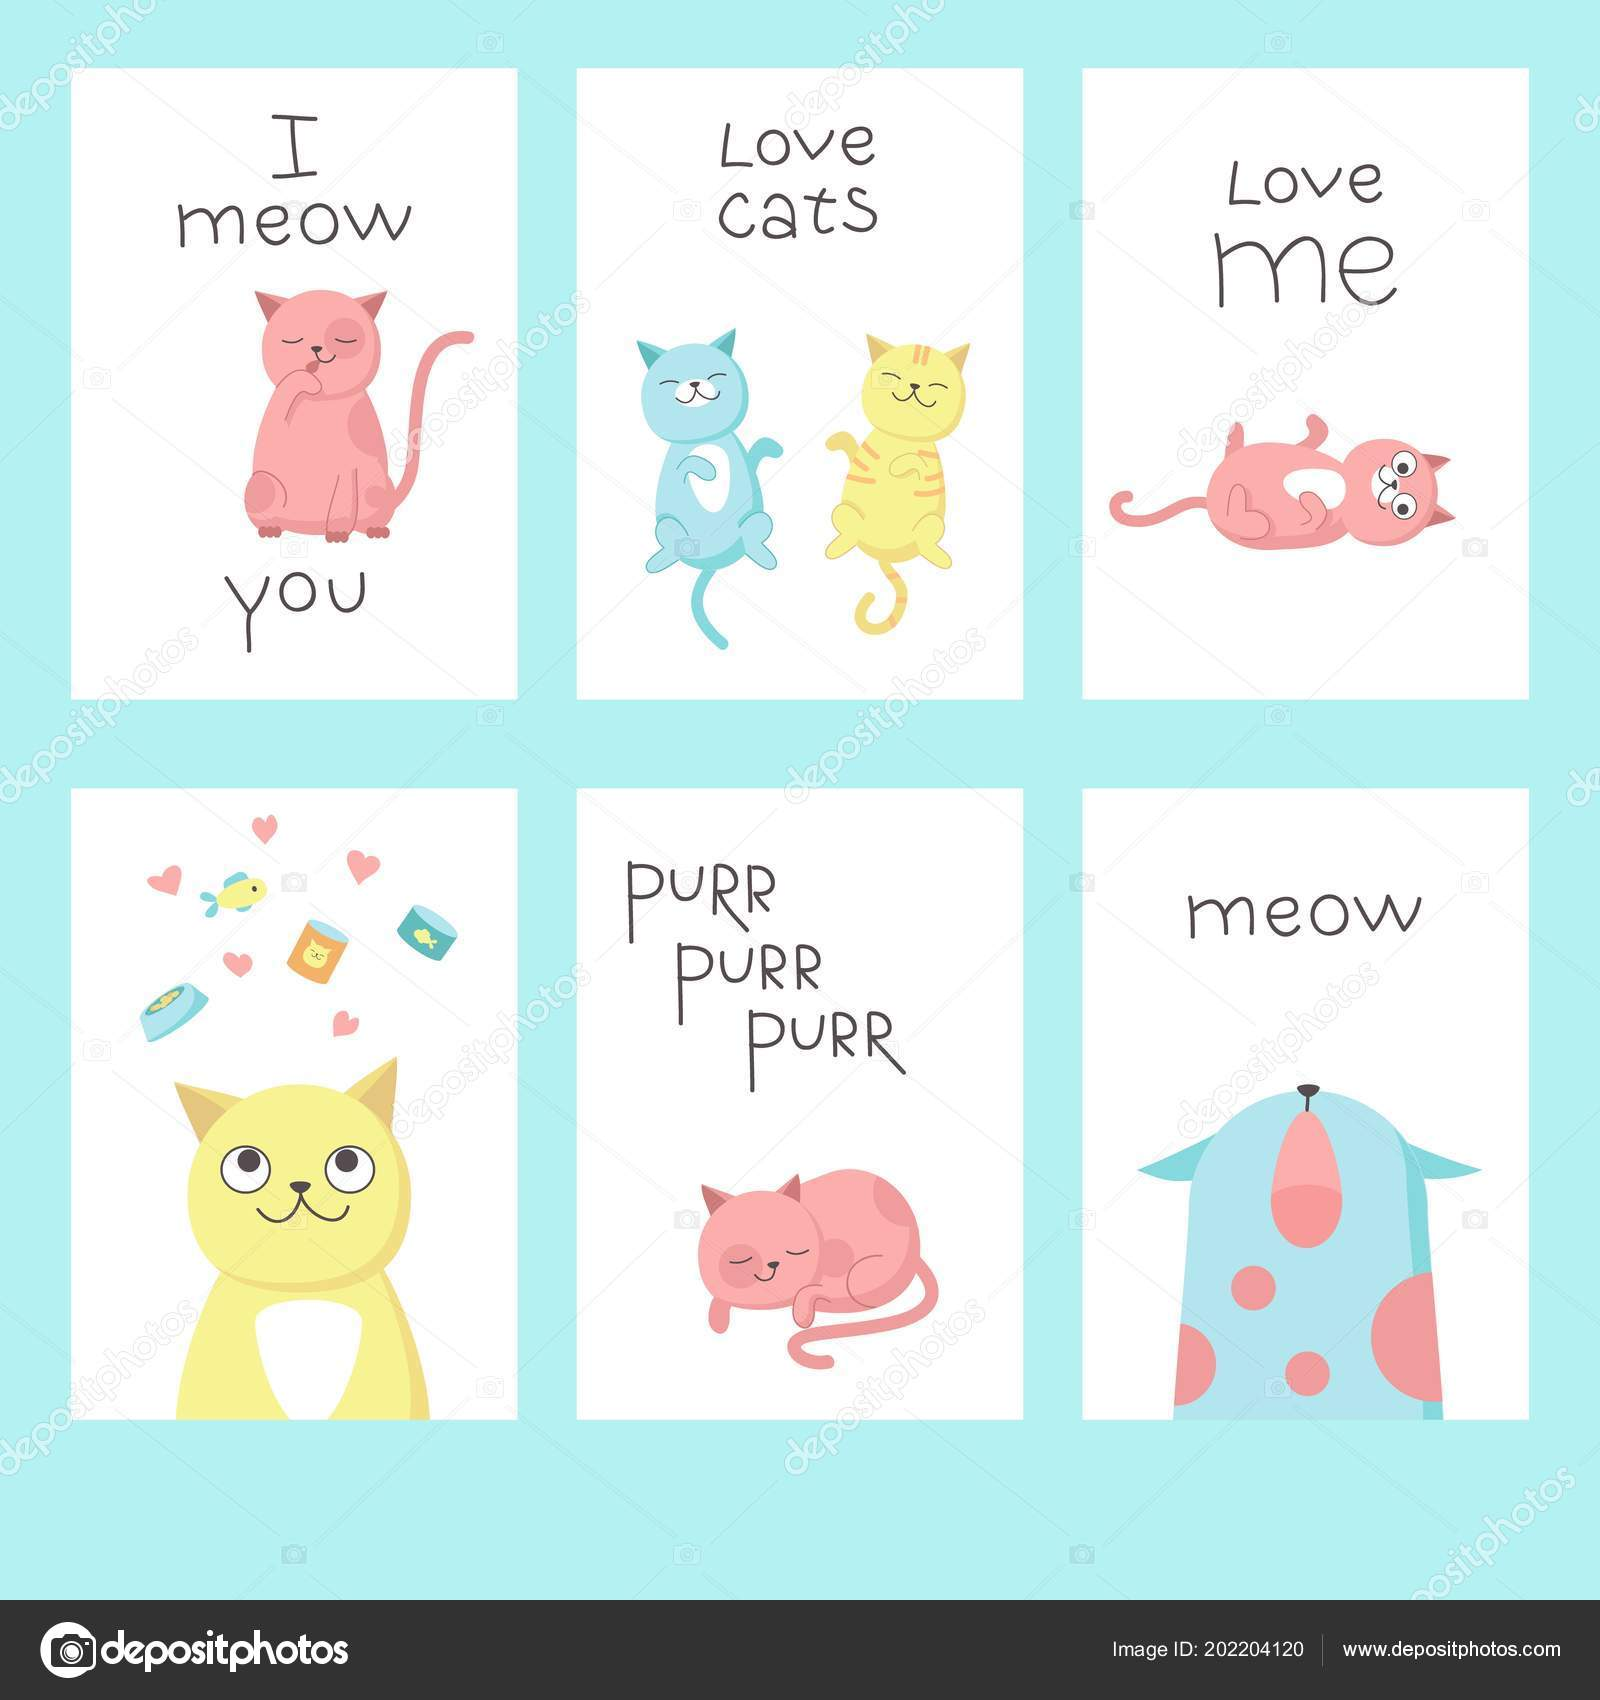 Love Cats Greeting Cards Vector Illustration Stock Vector